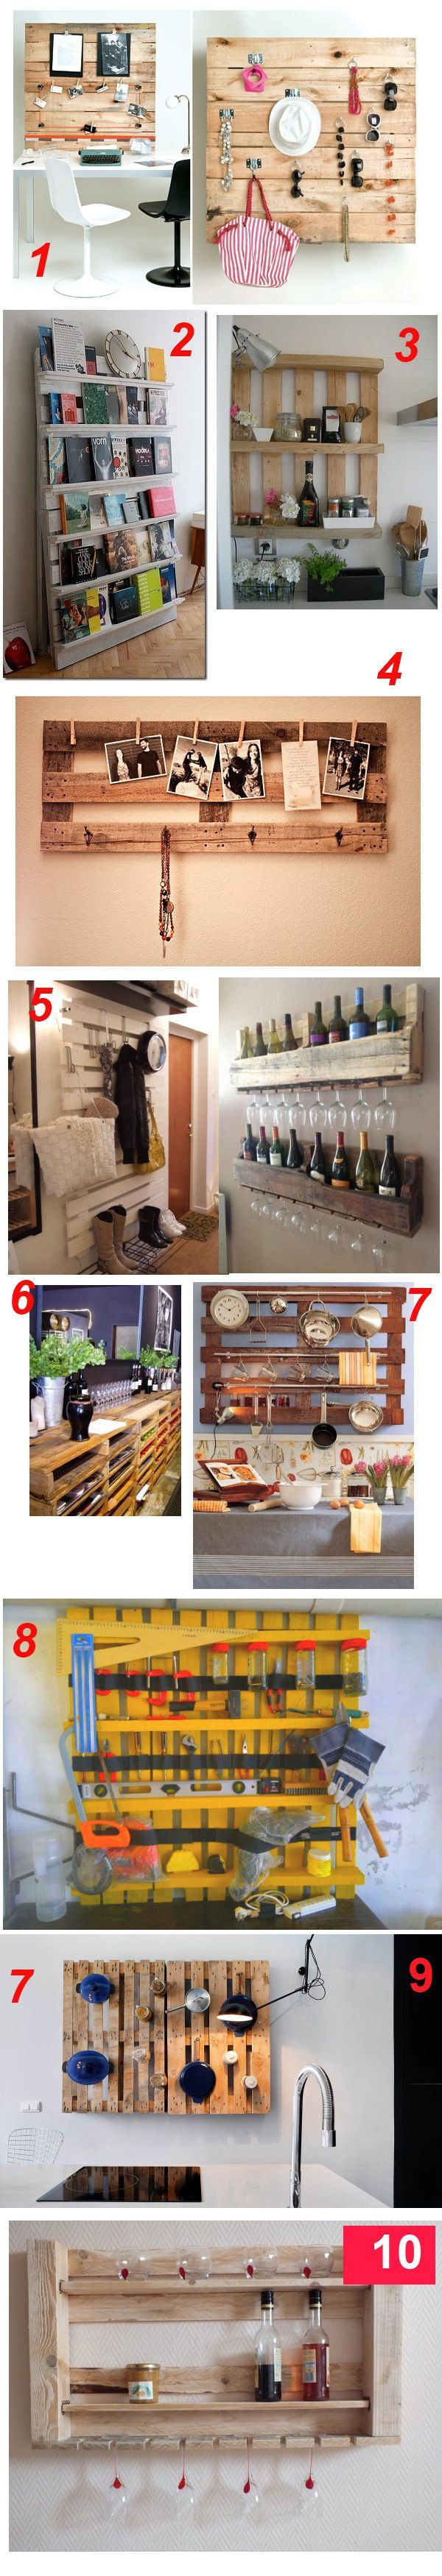 Ideas for inventive repurposing pallets